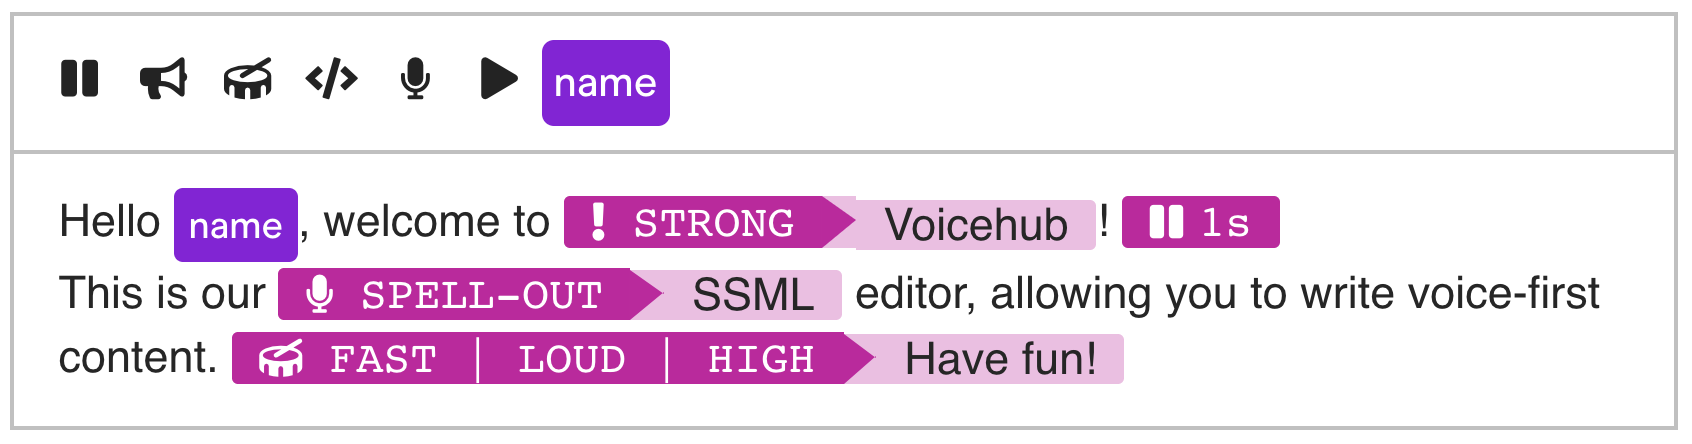 Voicehub SSML Editor Features